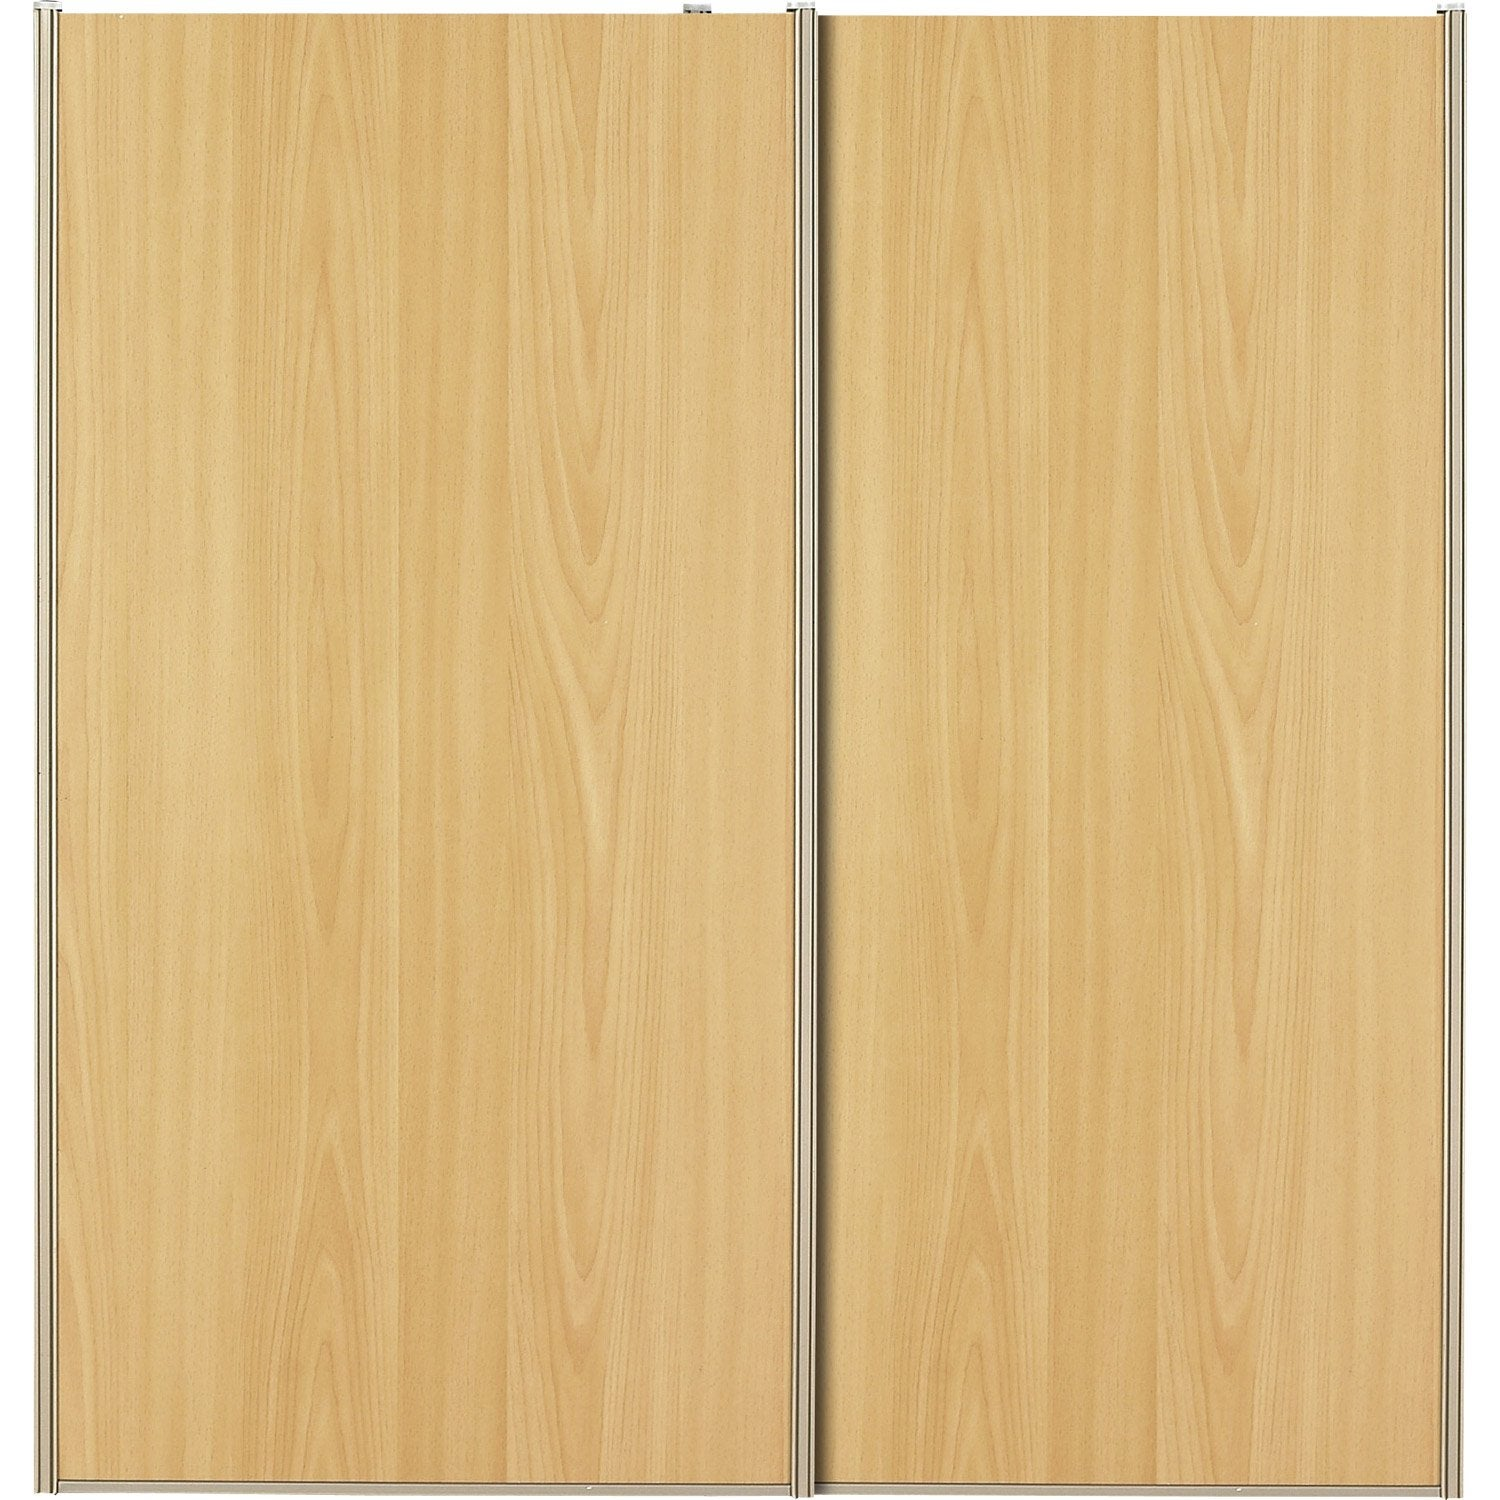 Lot de 2 portes de placard coulissantes naturel 120x120cm leroy merlin - Porte de placard leroy merlin ...